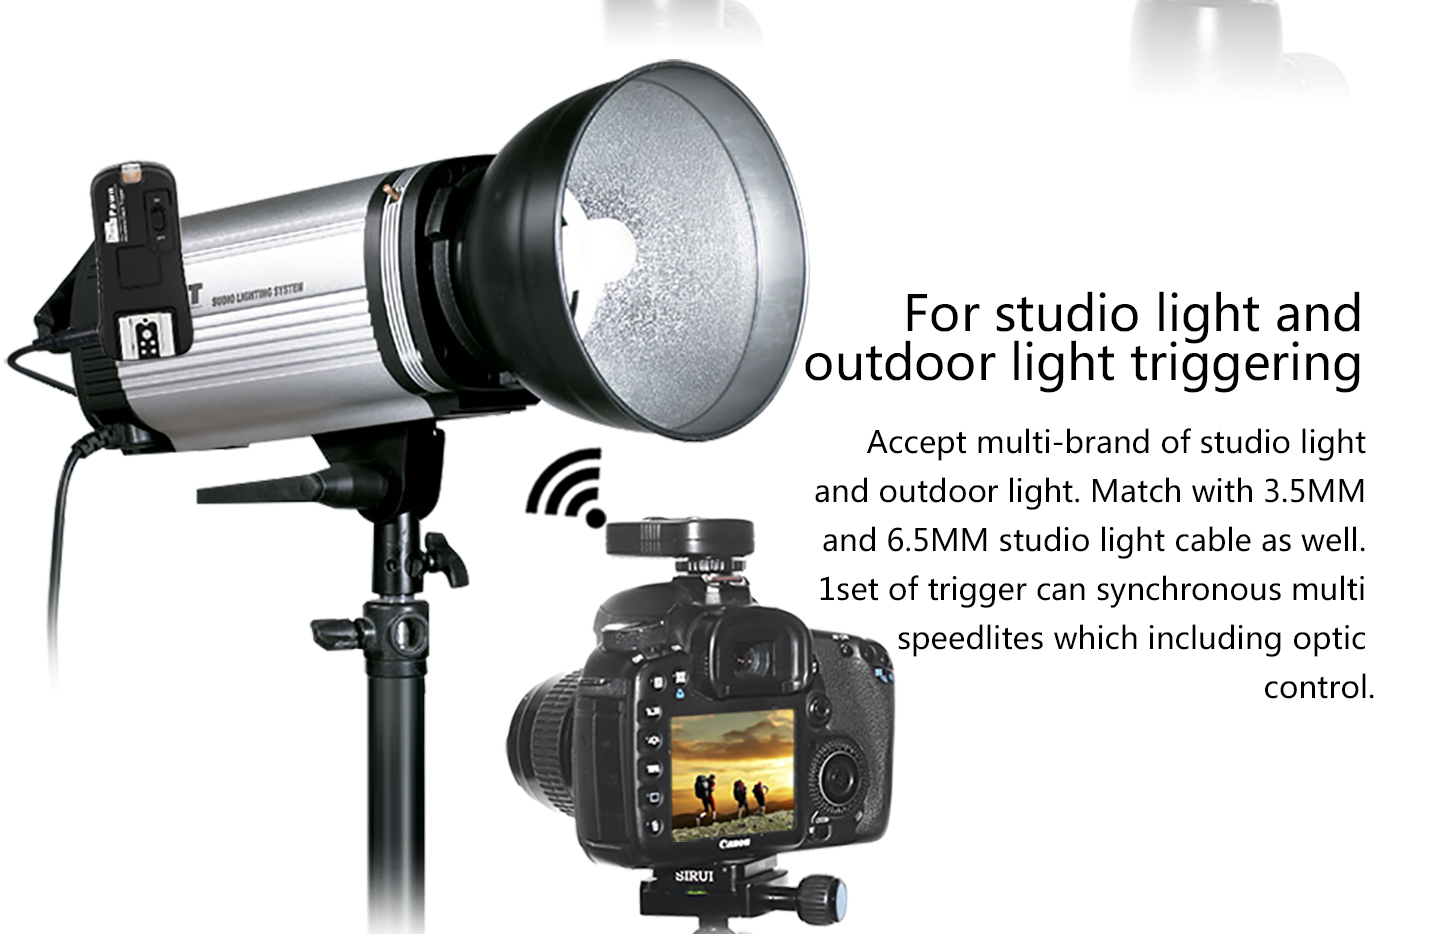 For studio light and outdoor light triggering